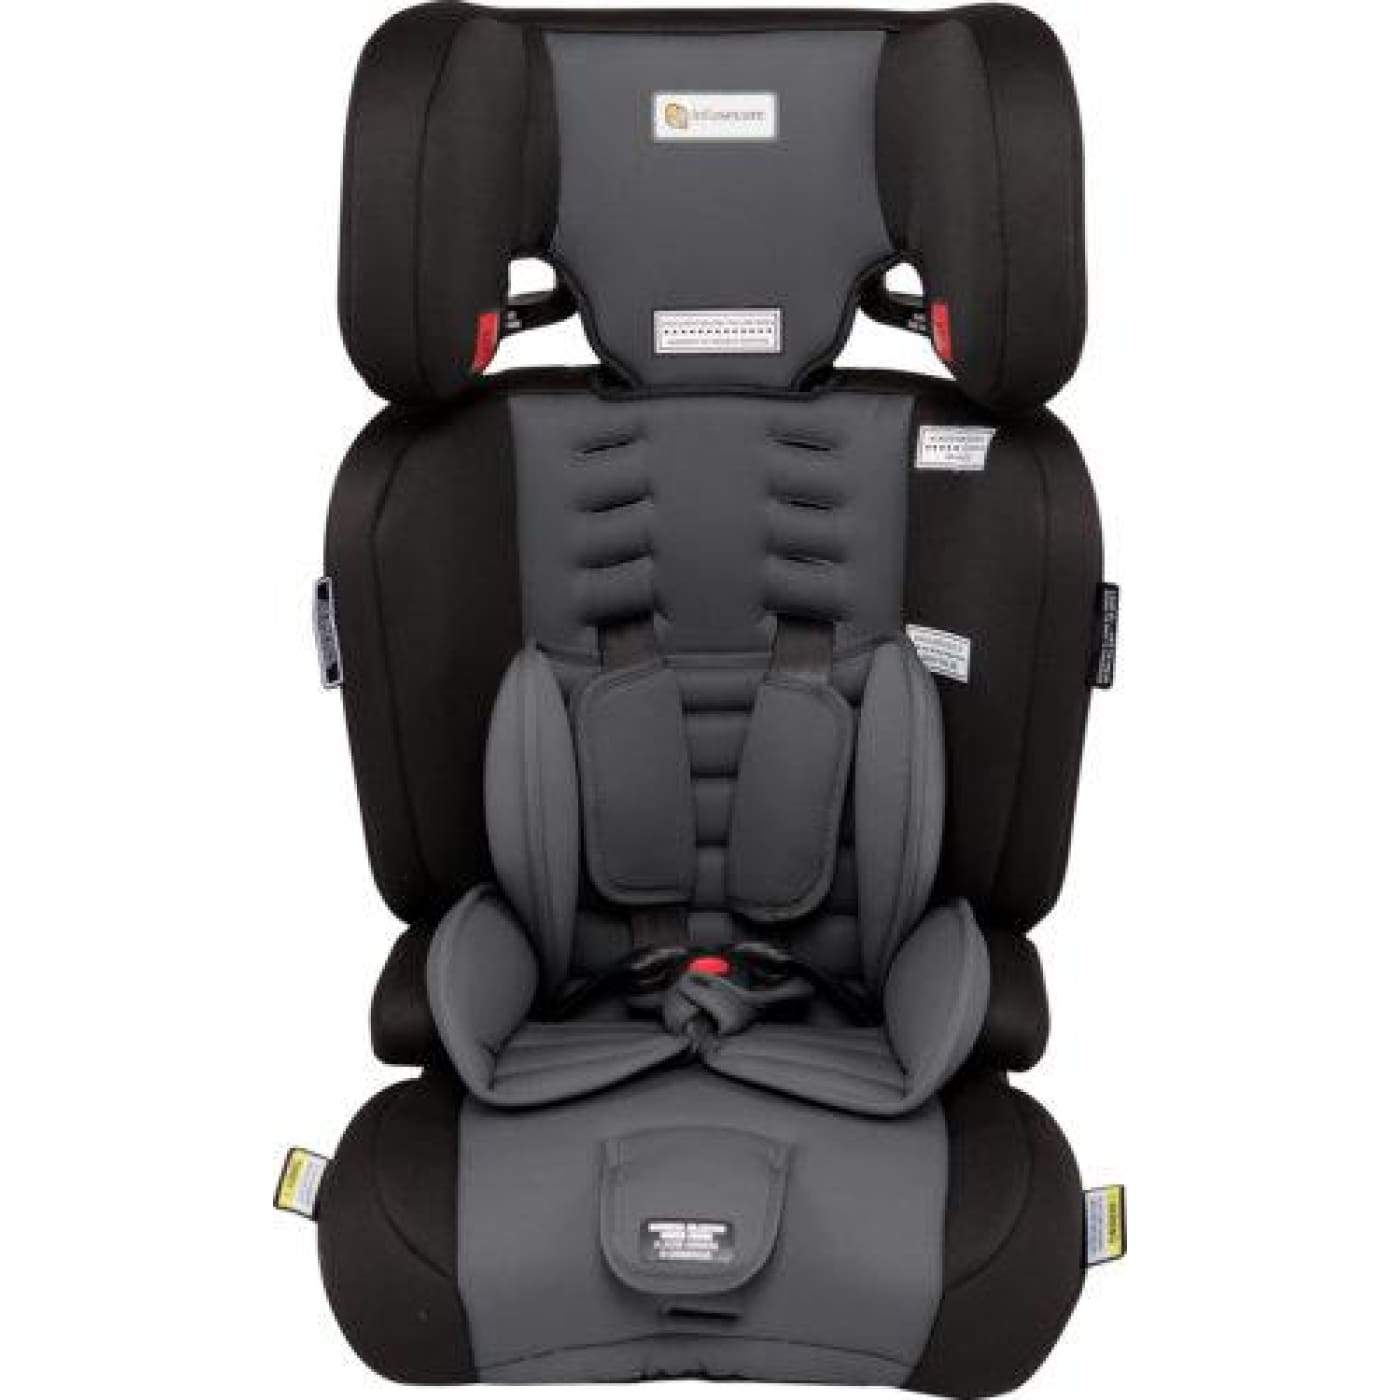 InfaSecure Visage Astra Convertible Booster 6M-8YR - Grey - CAR SEATS - CONV BOOSTERS (6M-8YR)